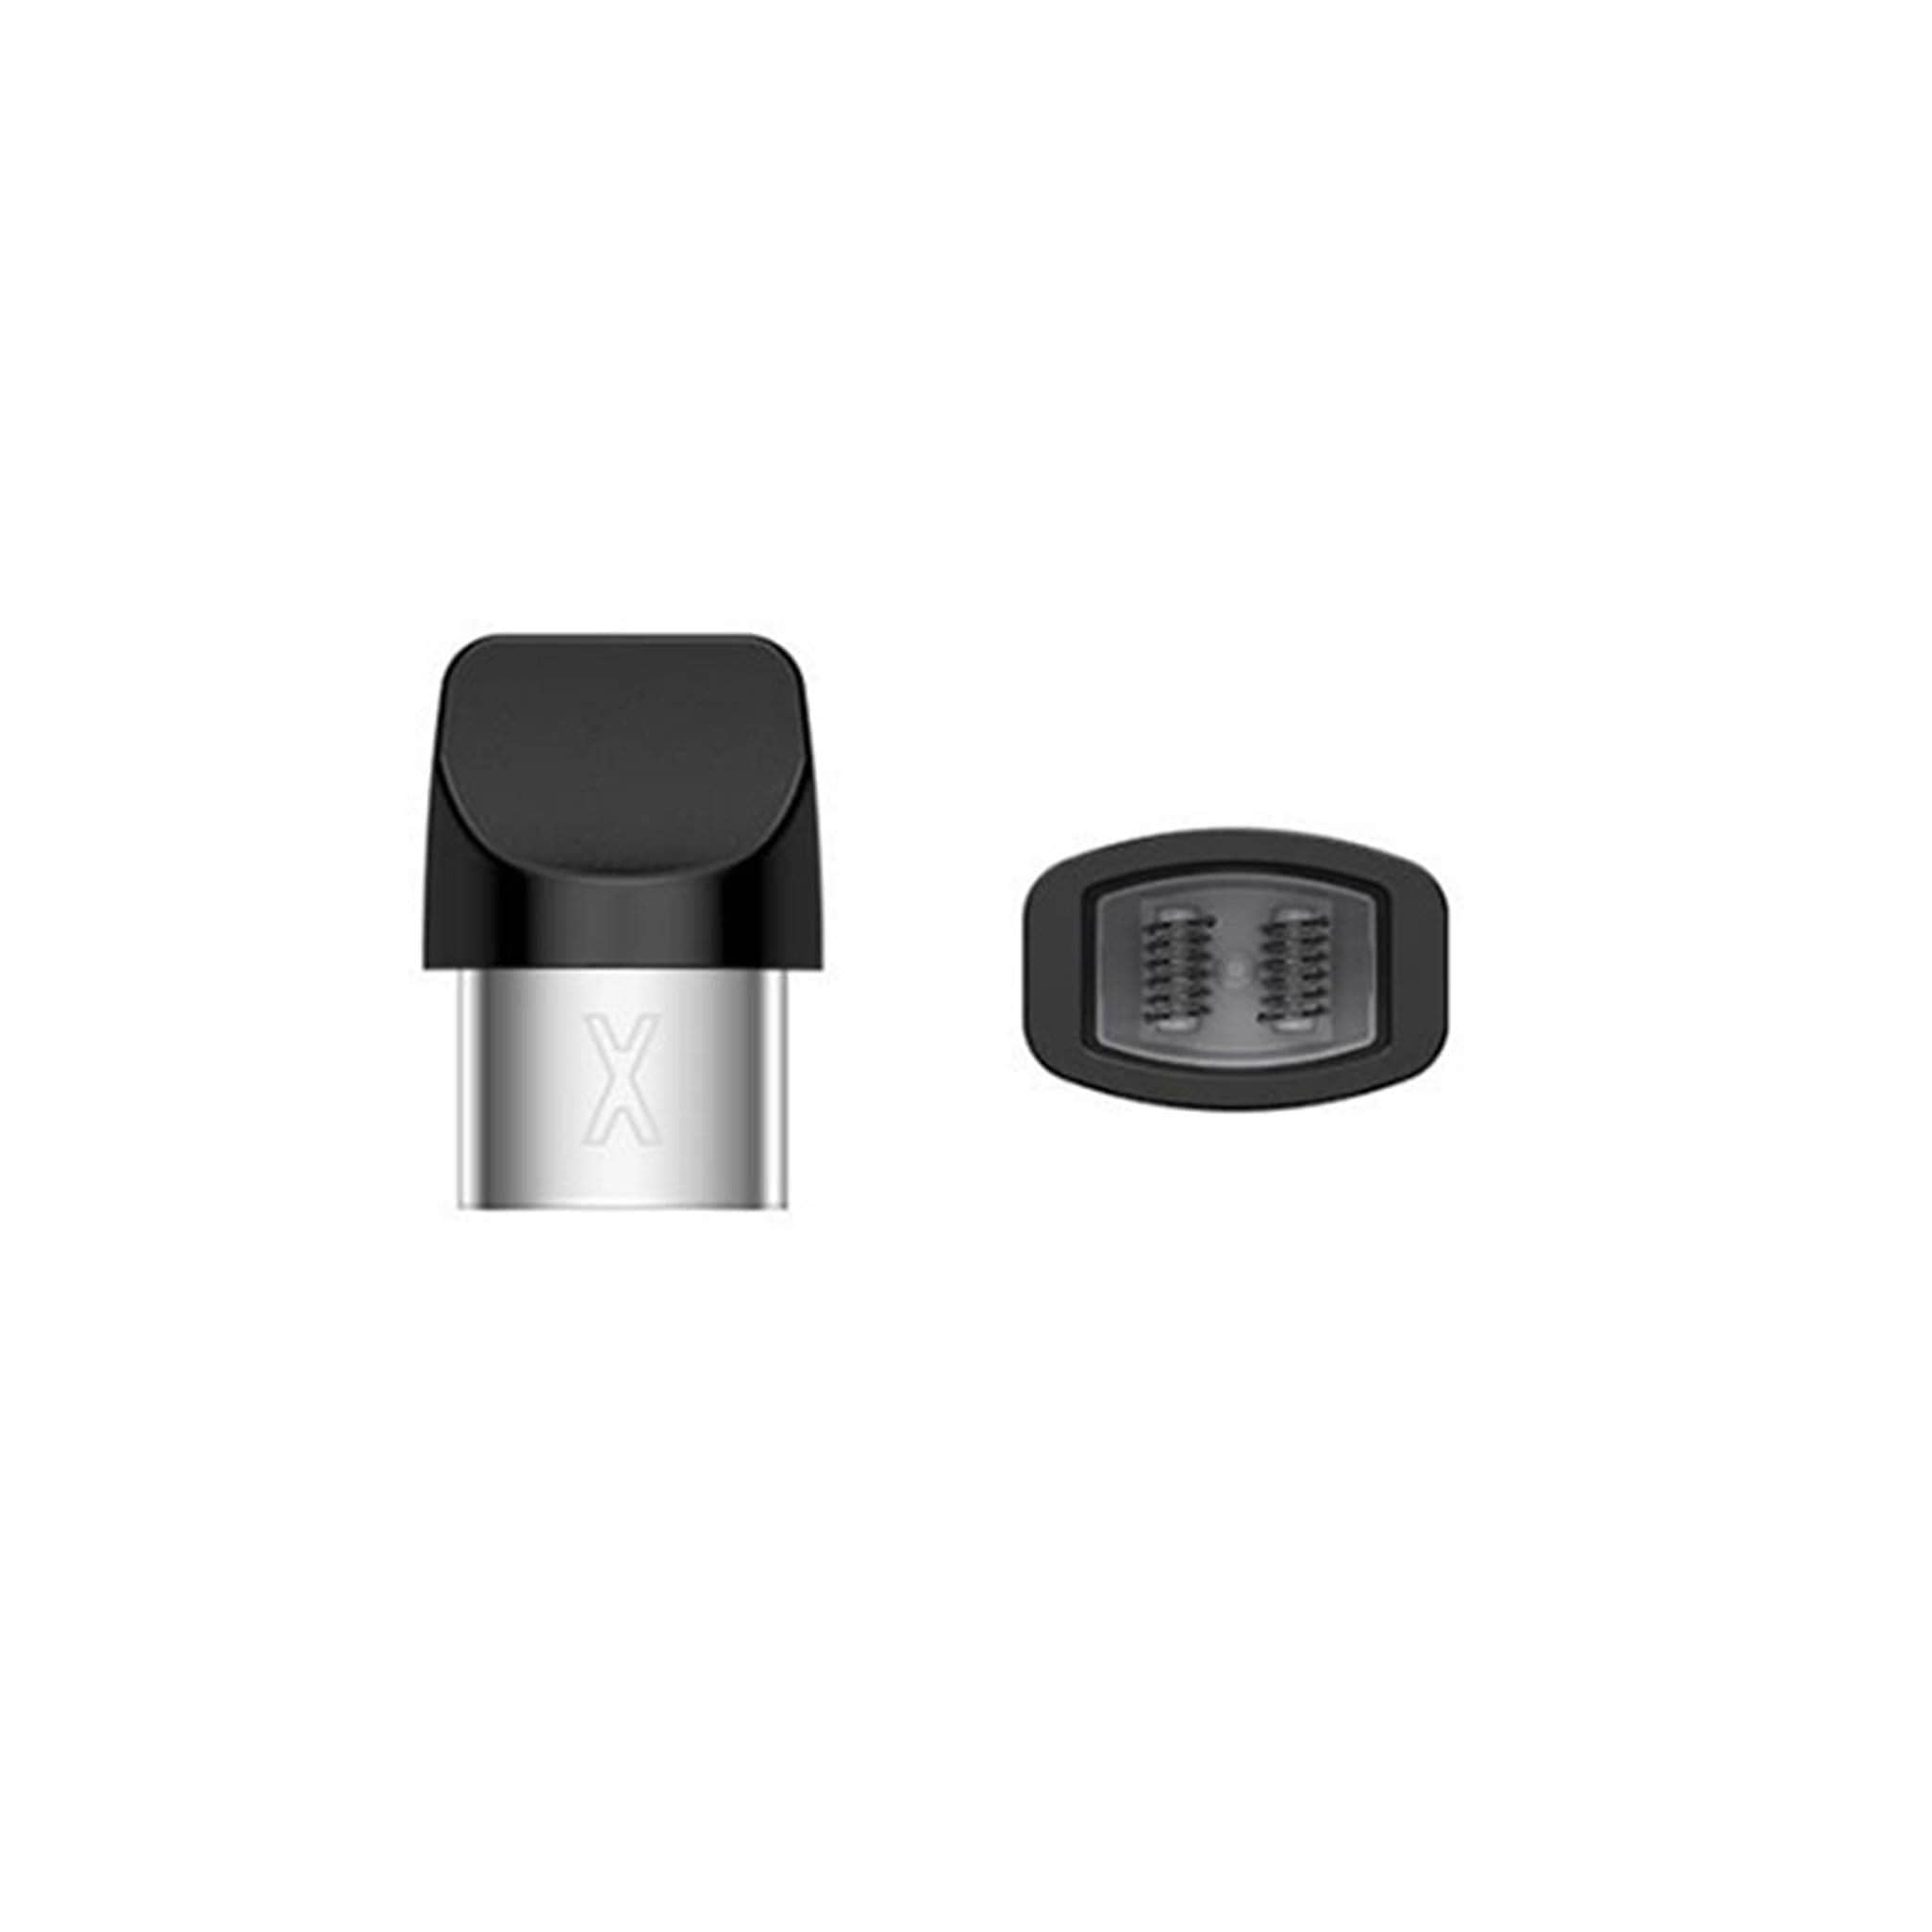 YOCAN X CONCENTRATE REPLACEMENT POD (Pods Priced Individually)